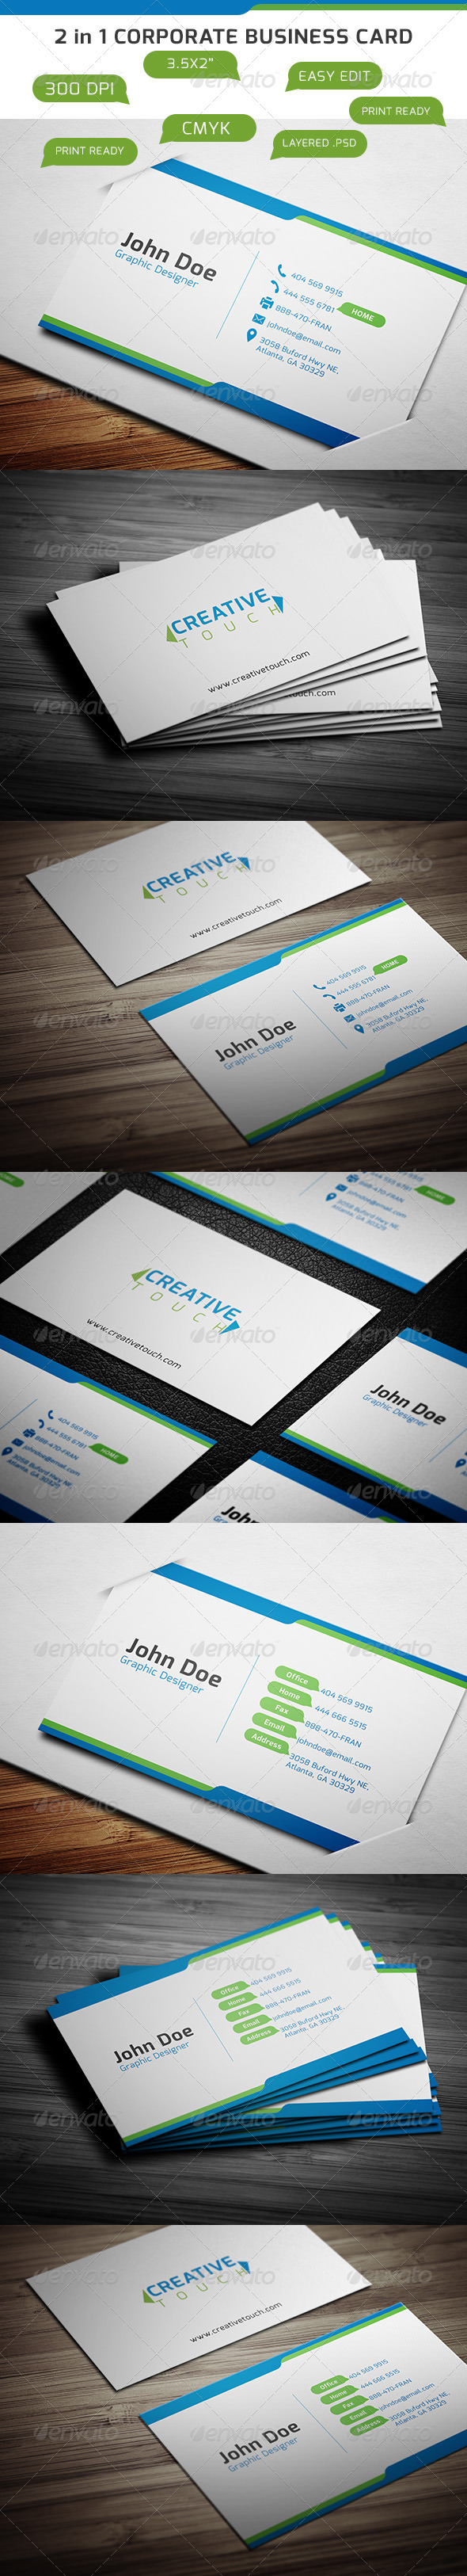 GraphicRiver 2 in 1 Corporate Business Card 6347030